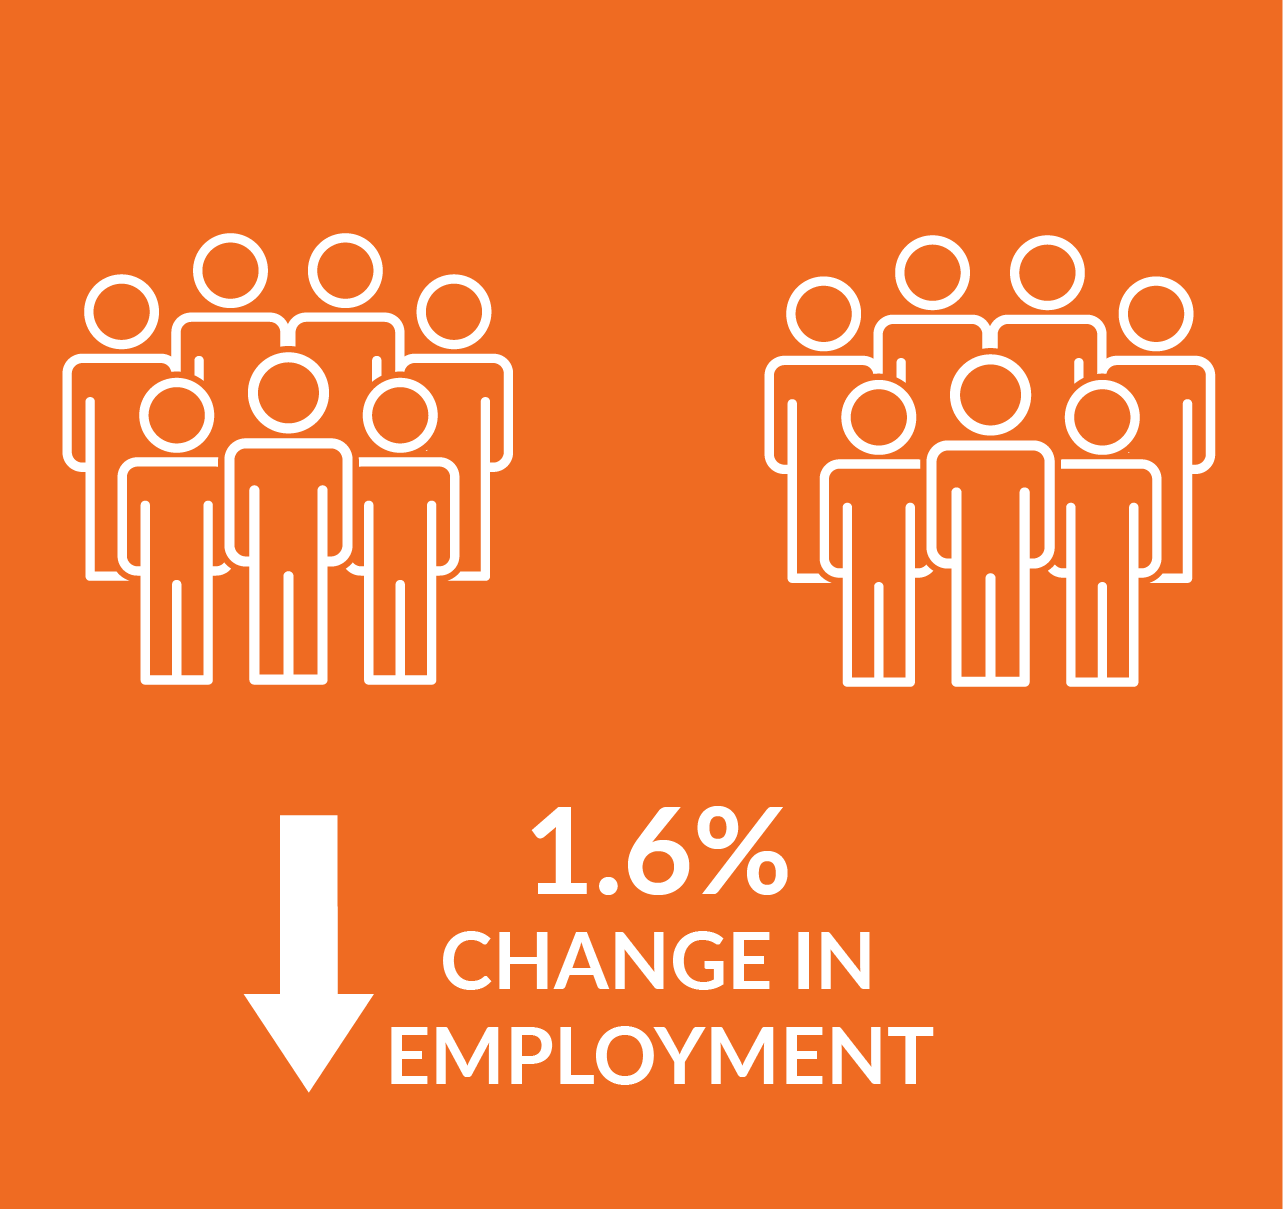 Infographic showing change in employment